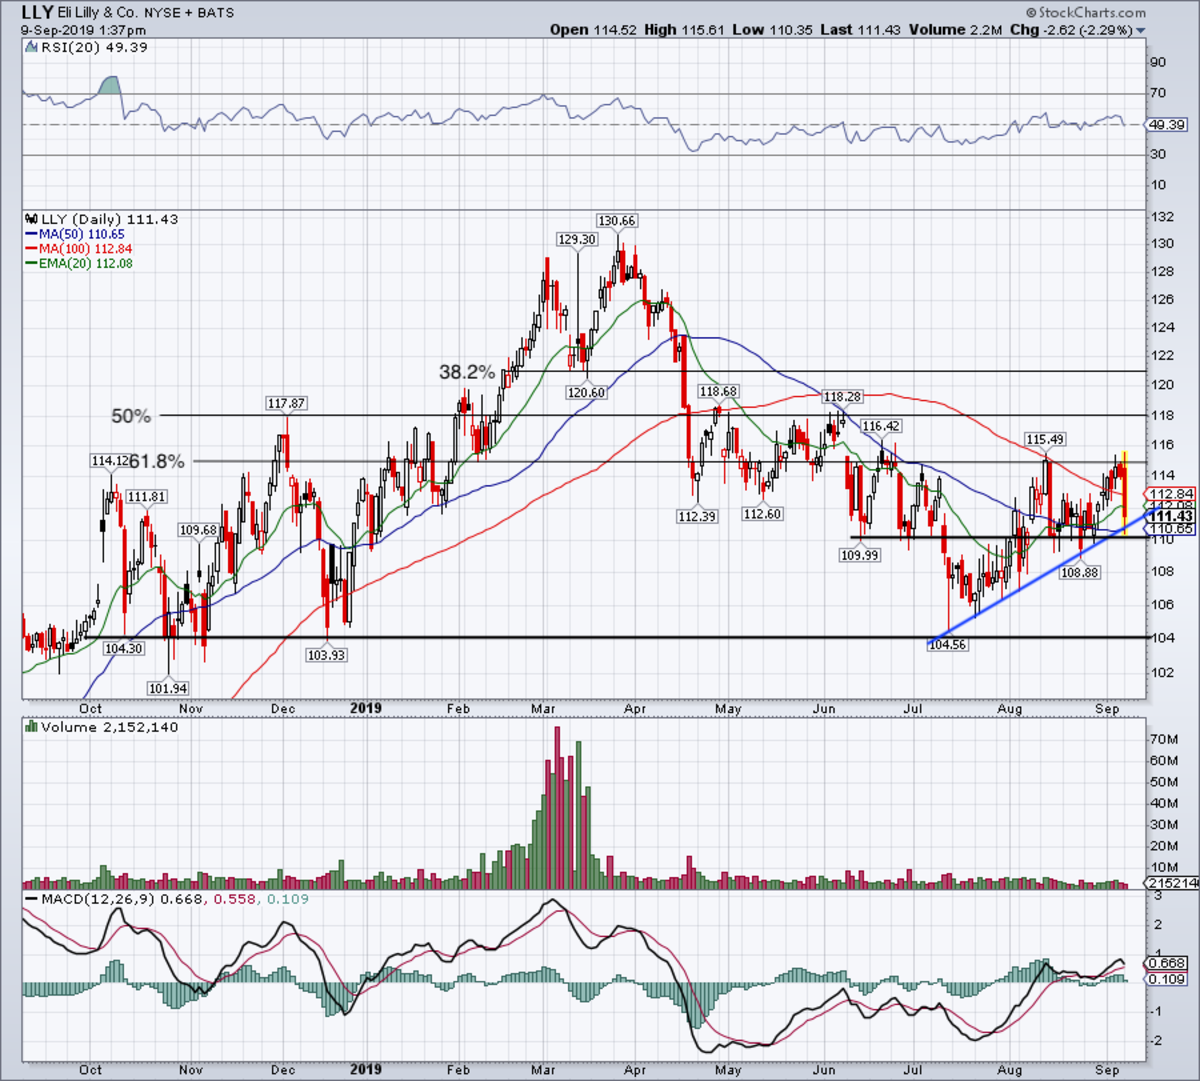 Daily chart of Eli Lilly stock.